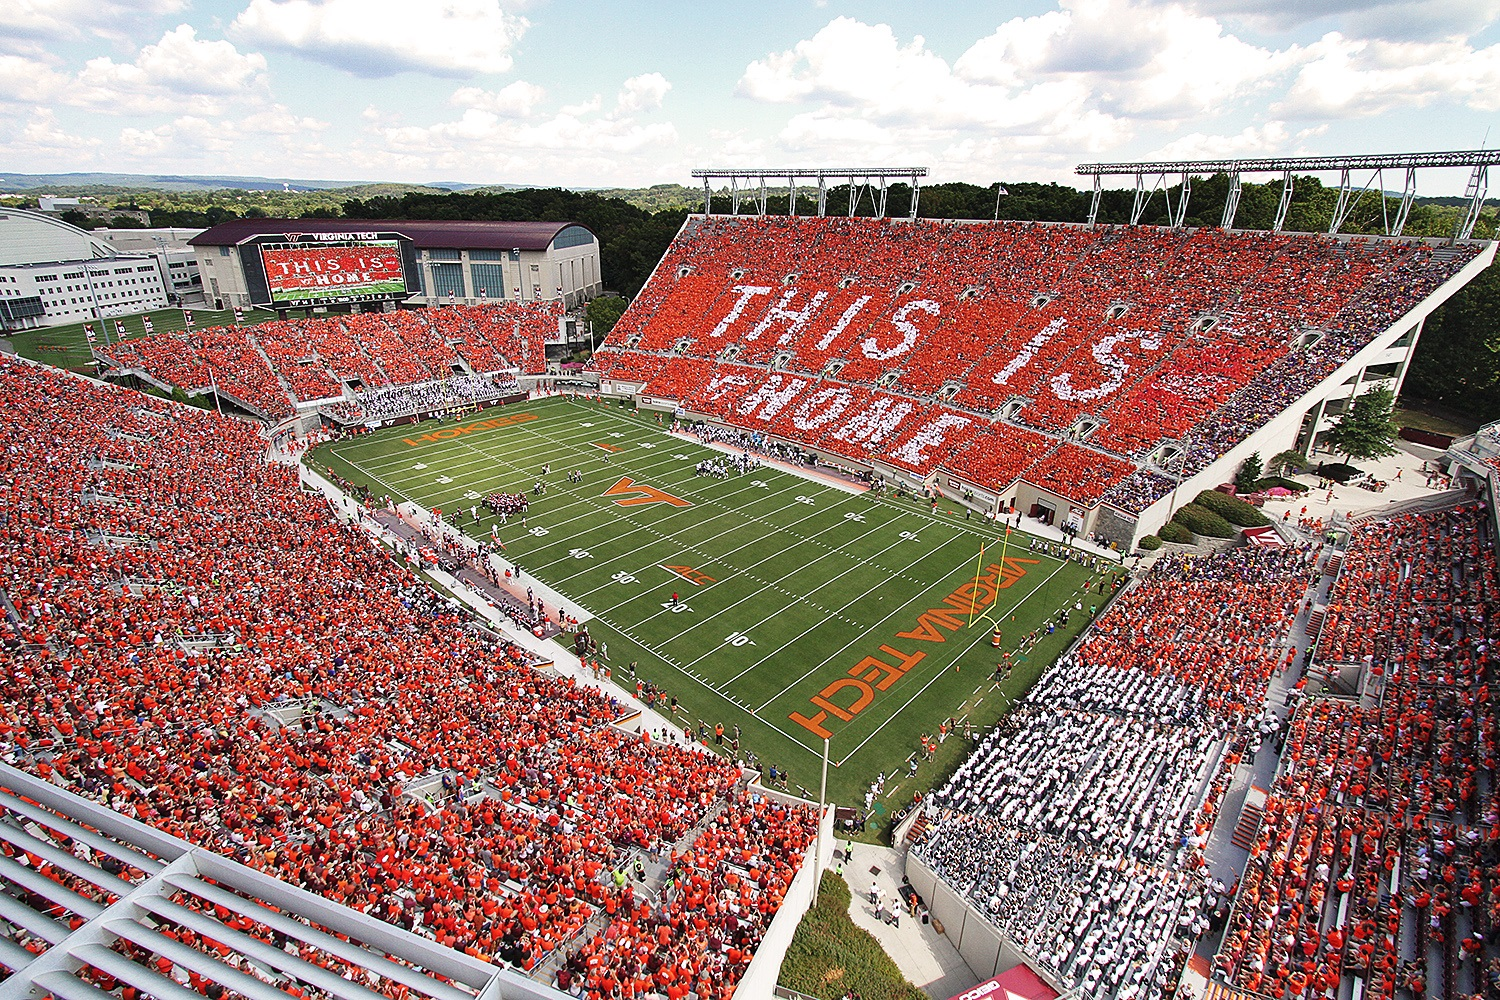 Vt fb this is home 2016 1